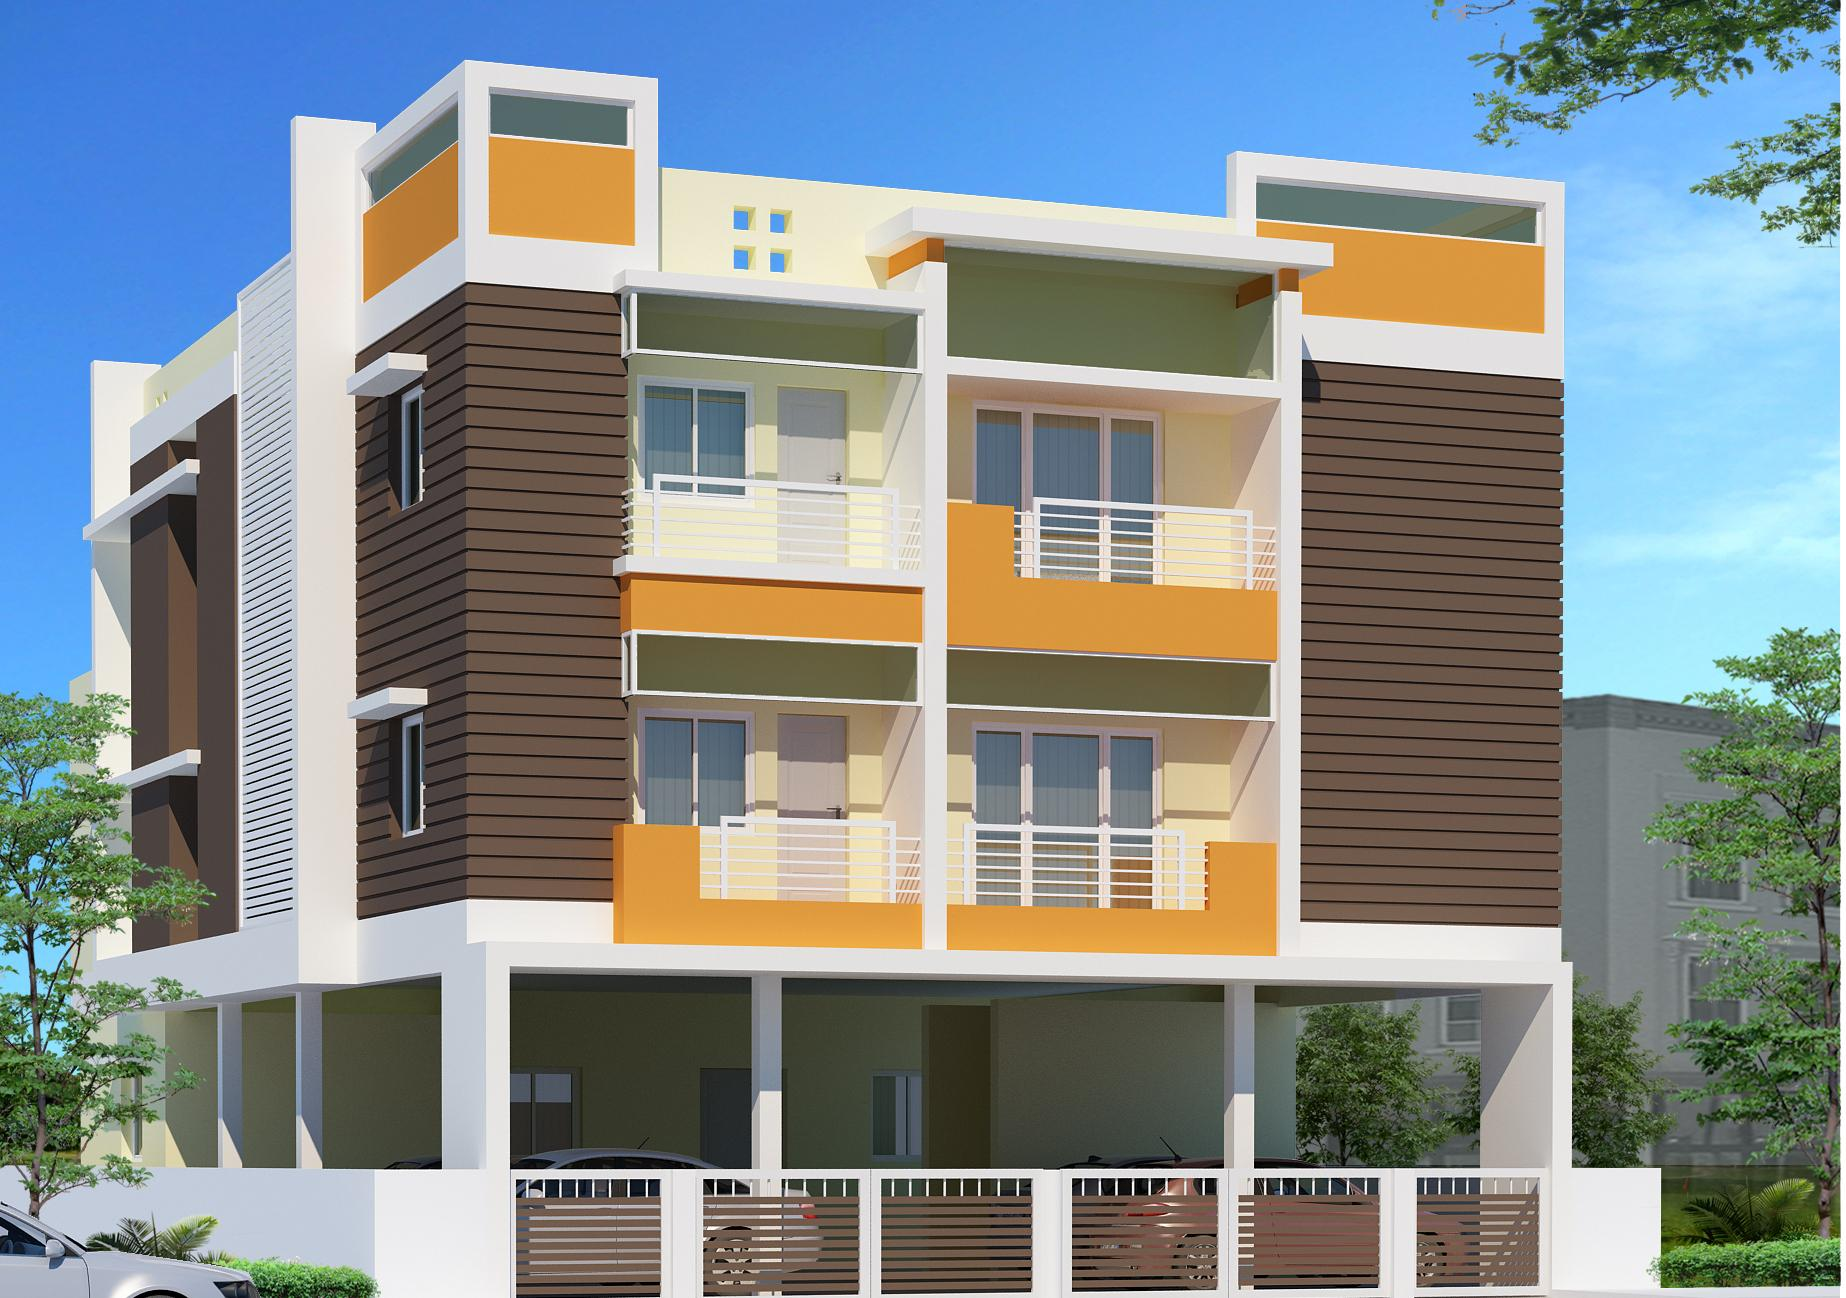 Front Elevation Two Storey Building : Contemporary two story office building elevations joy